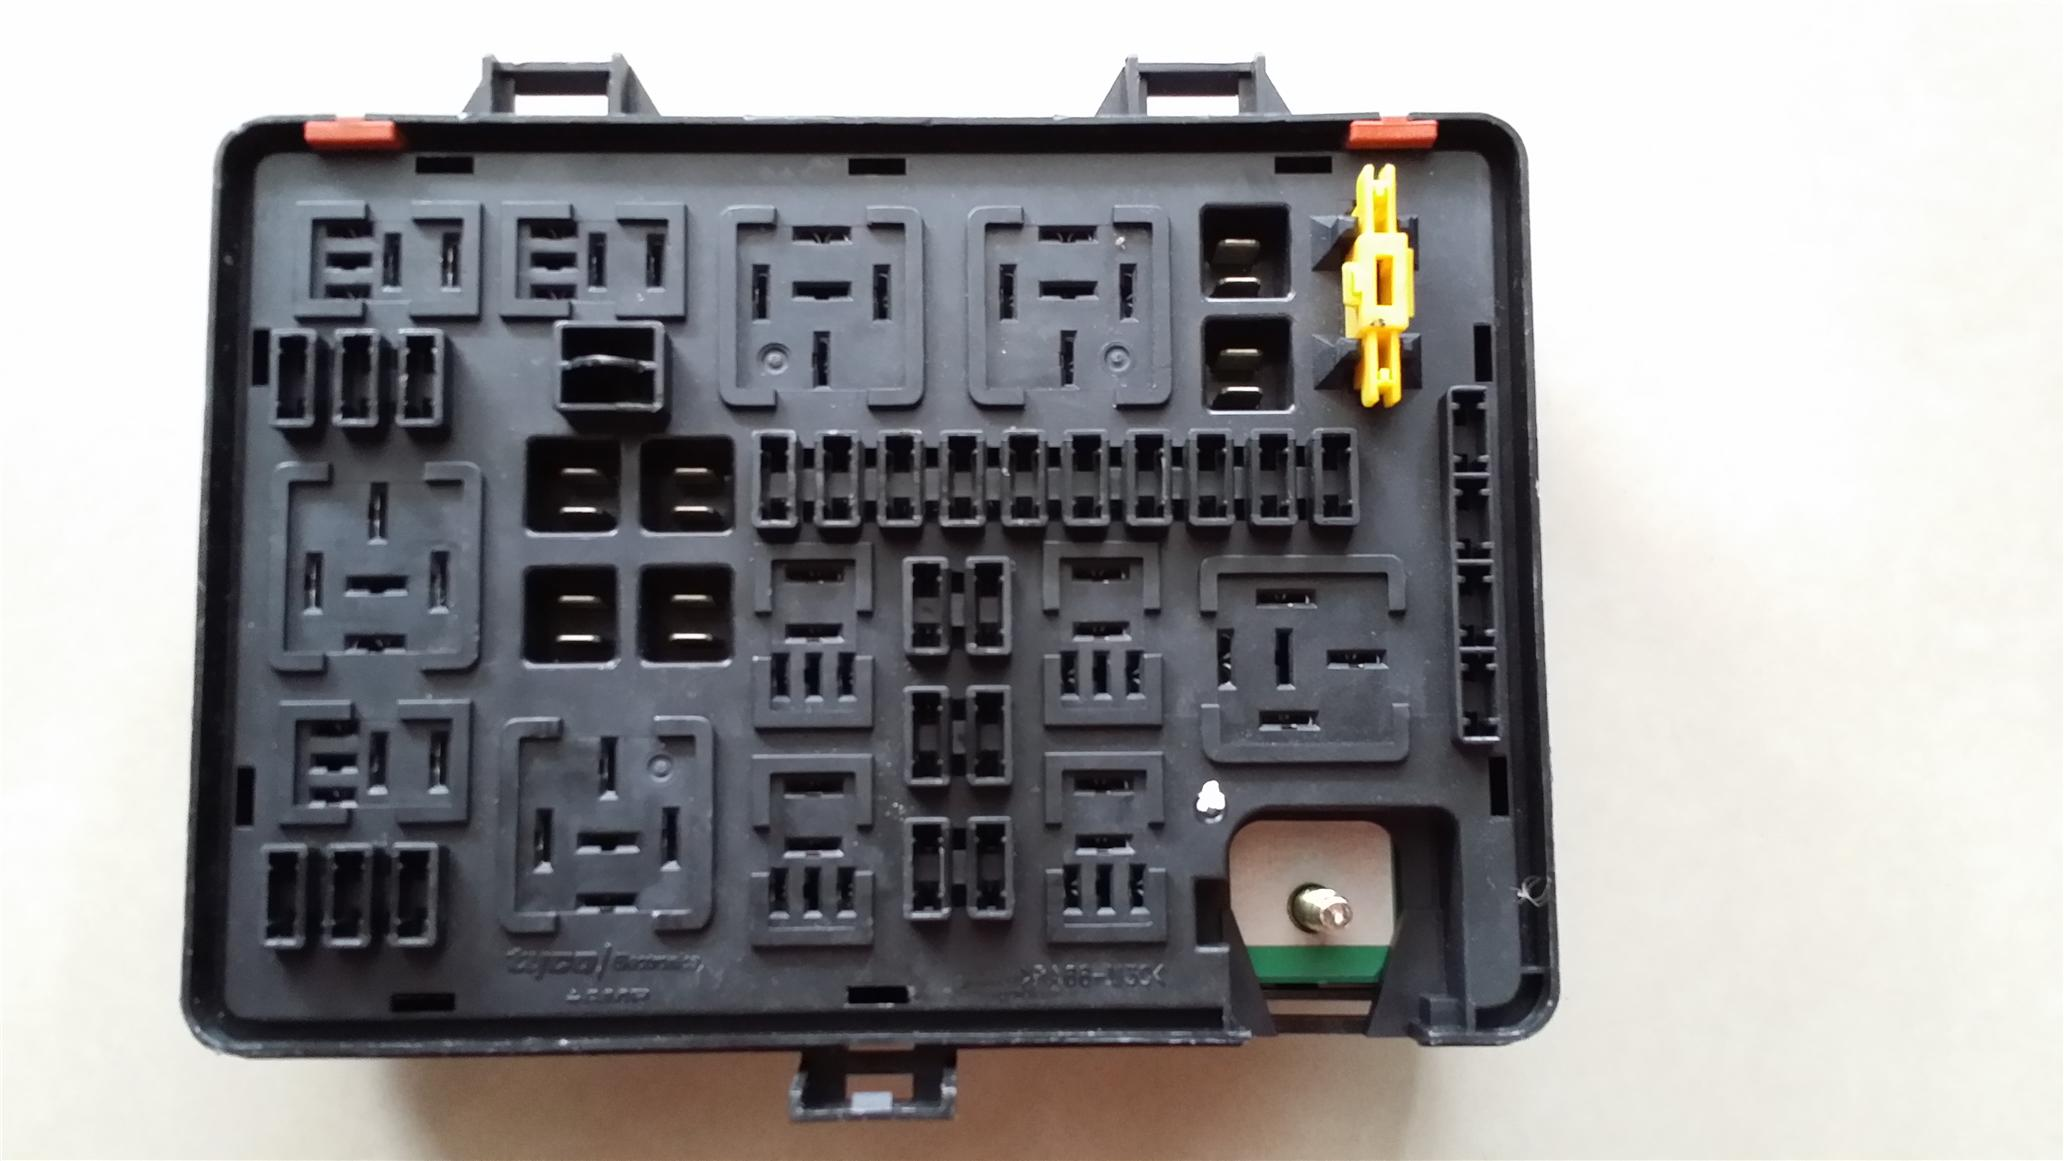 gen2 original main fuse box master star icon 1507 04 STAR_ICON@20 main fuse fuse box how to change a fuse in a breaker box \u2022 wiring fuse box location 1988 rx7 convertible at mifinder.co